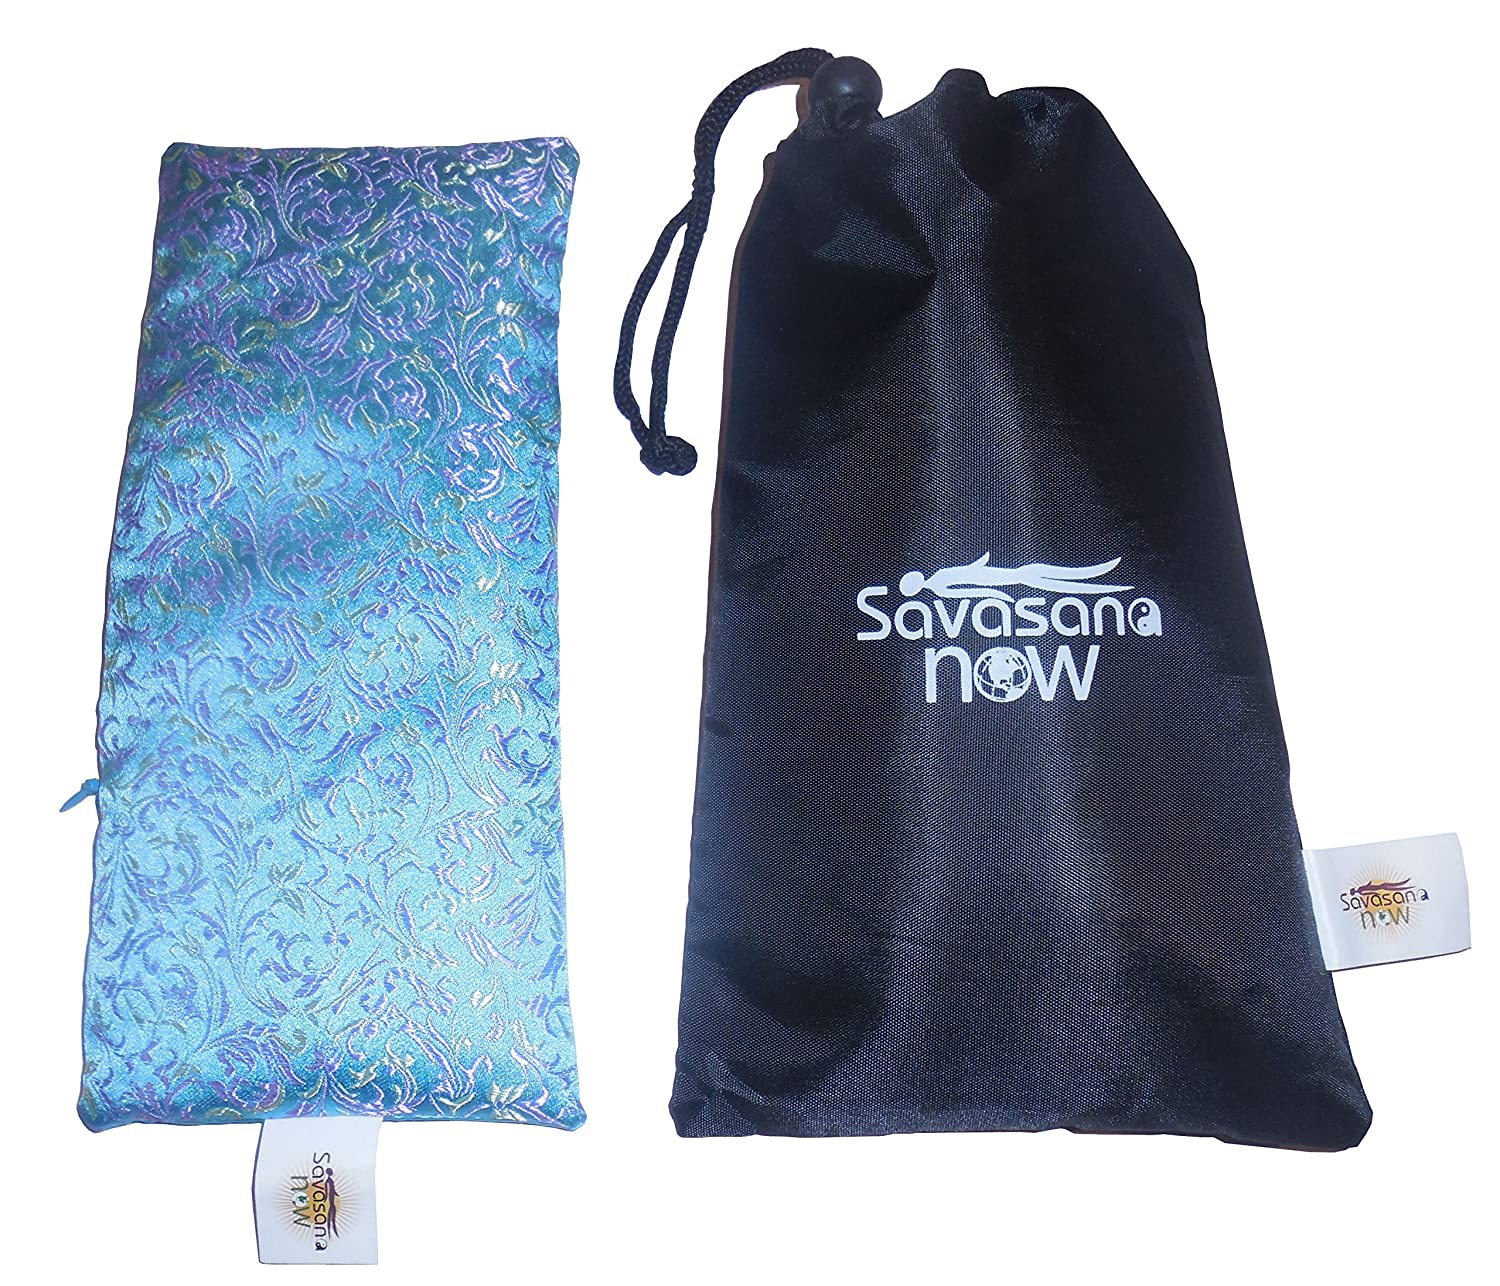 Amazon.com: Savasana Now almohada para los ojos, lavanda: Beauty